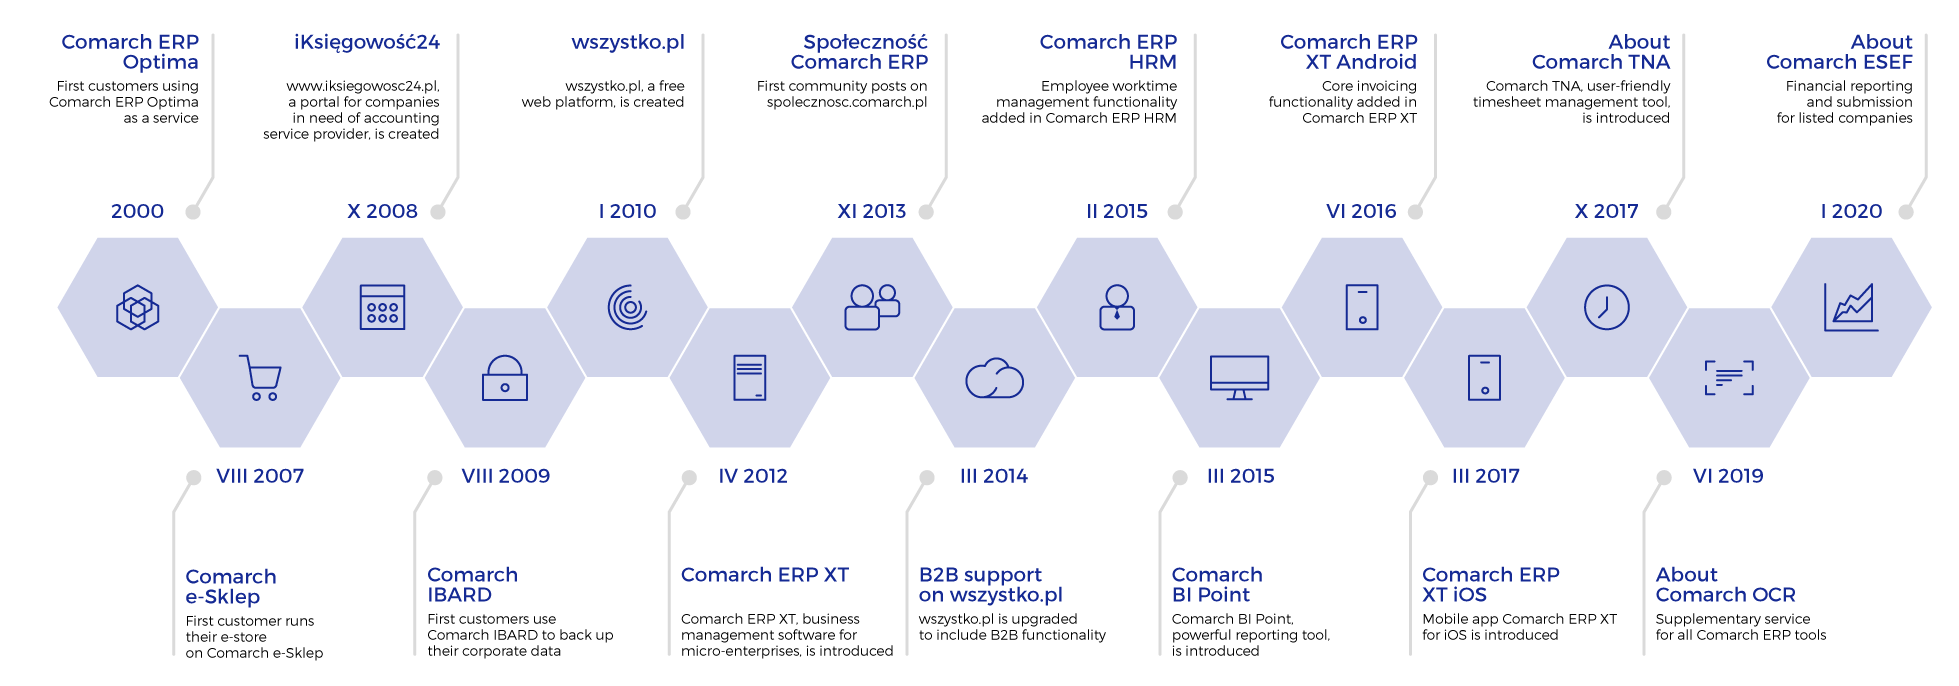 Timeline - comarch Cloud history dates back from 2000